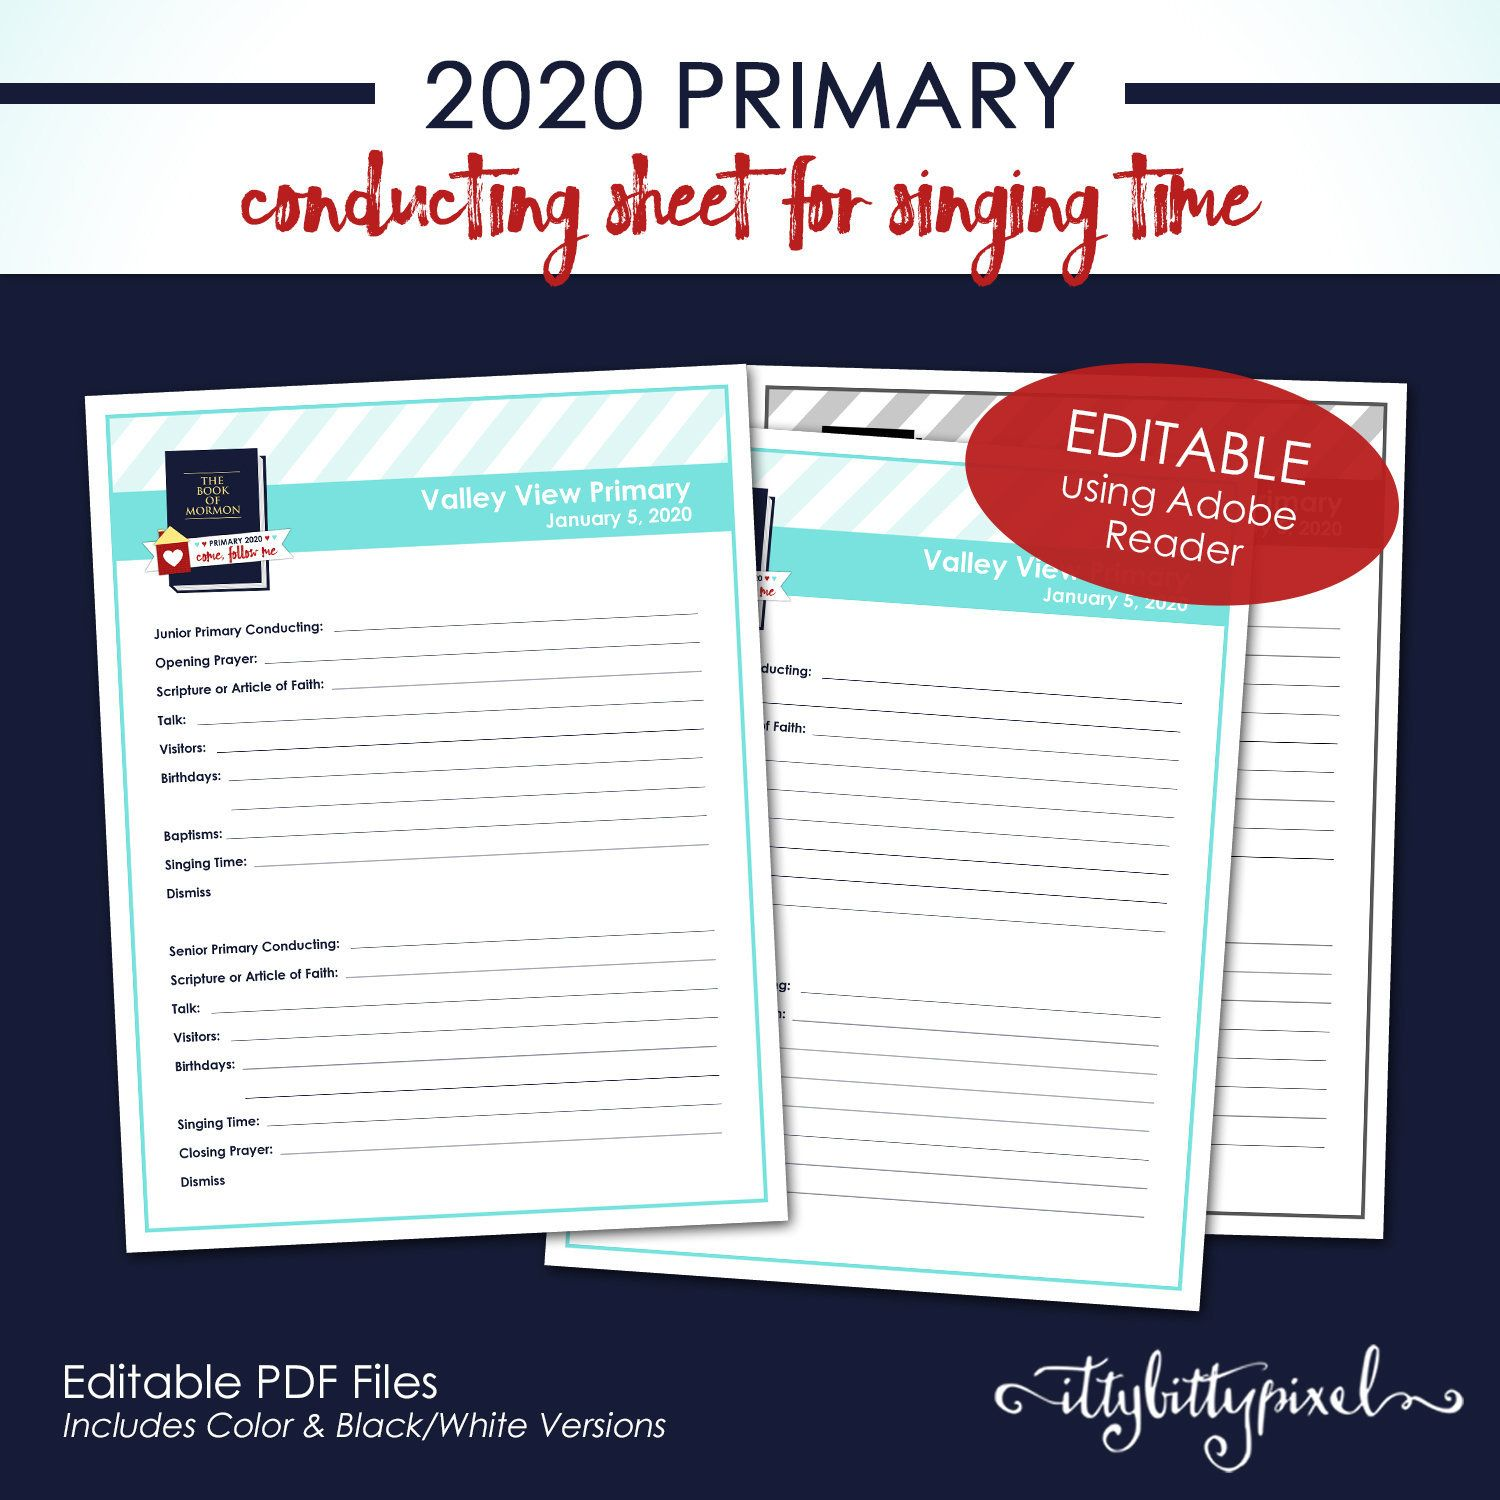 LDS 2020 Primary Conducting Sheet Come Follow Me Book of